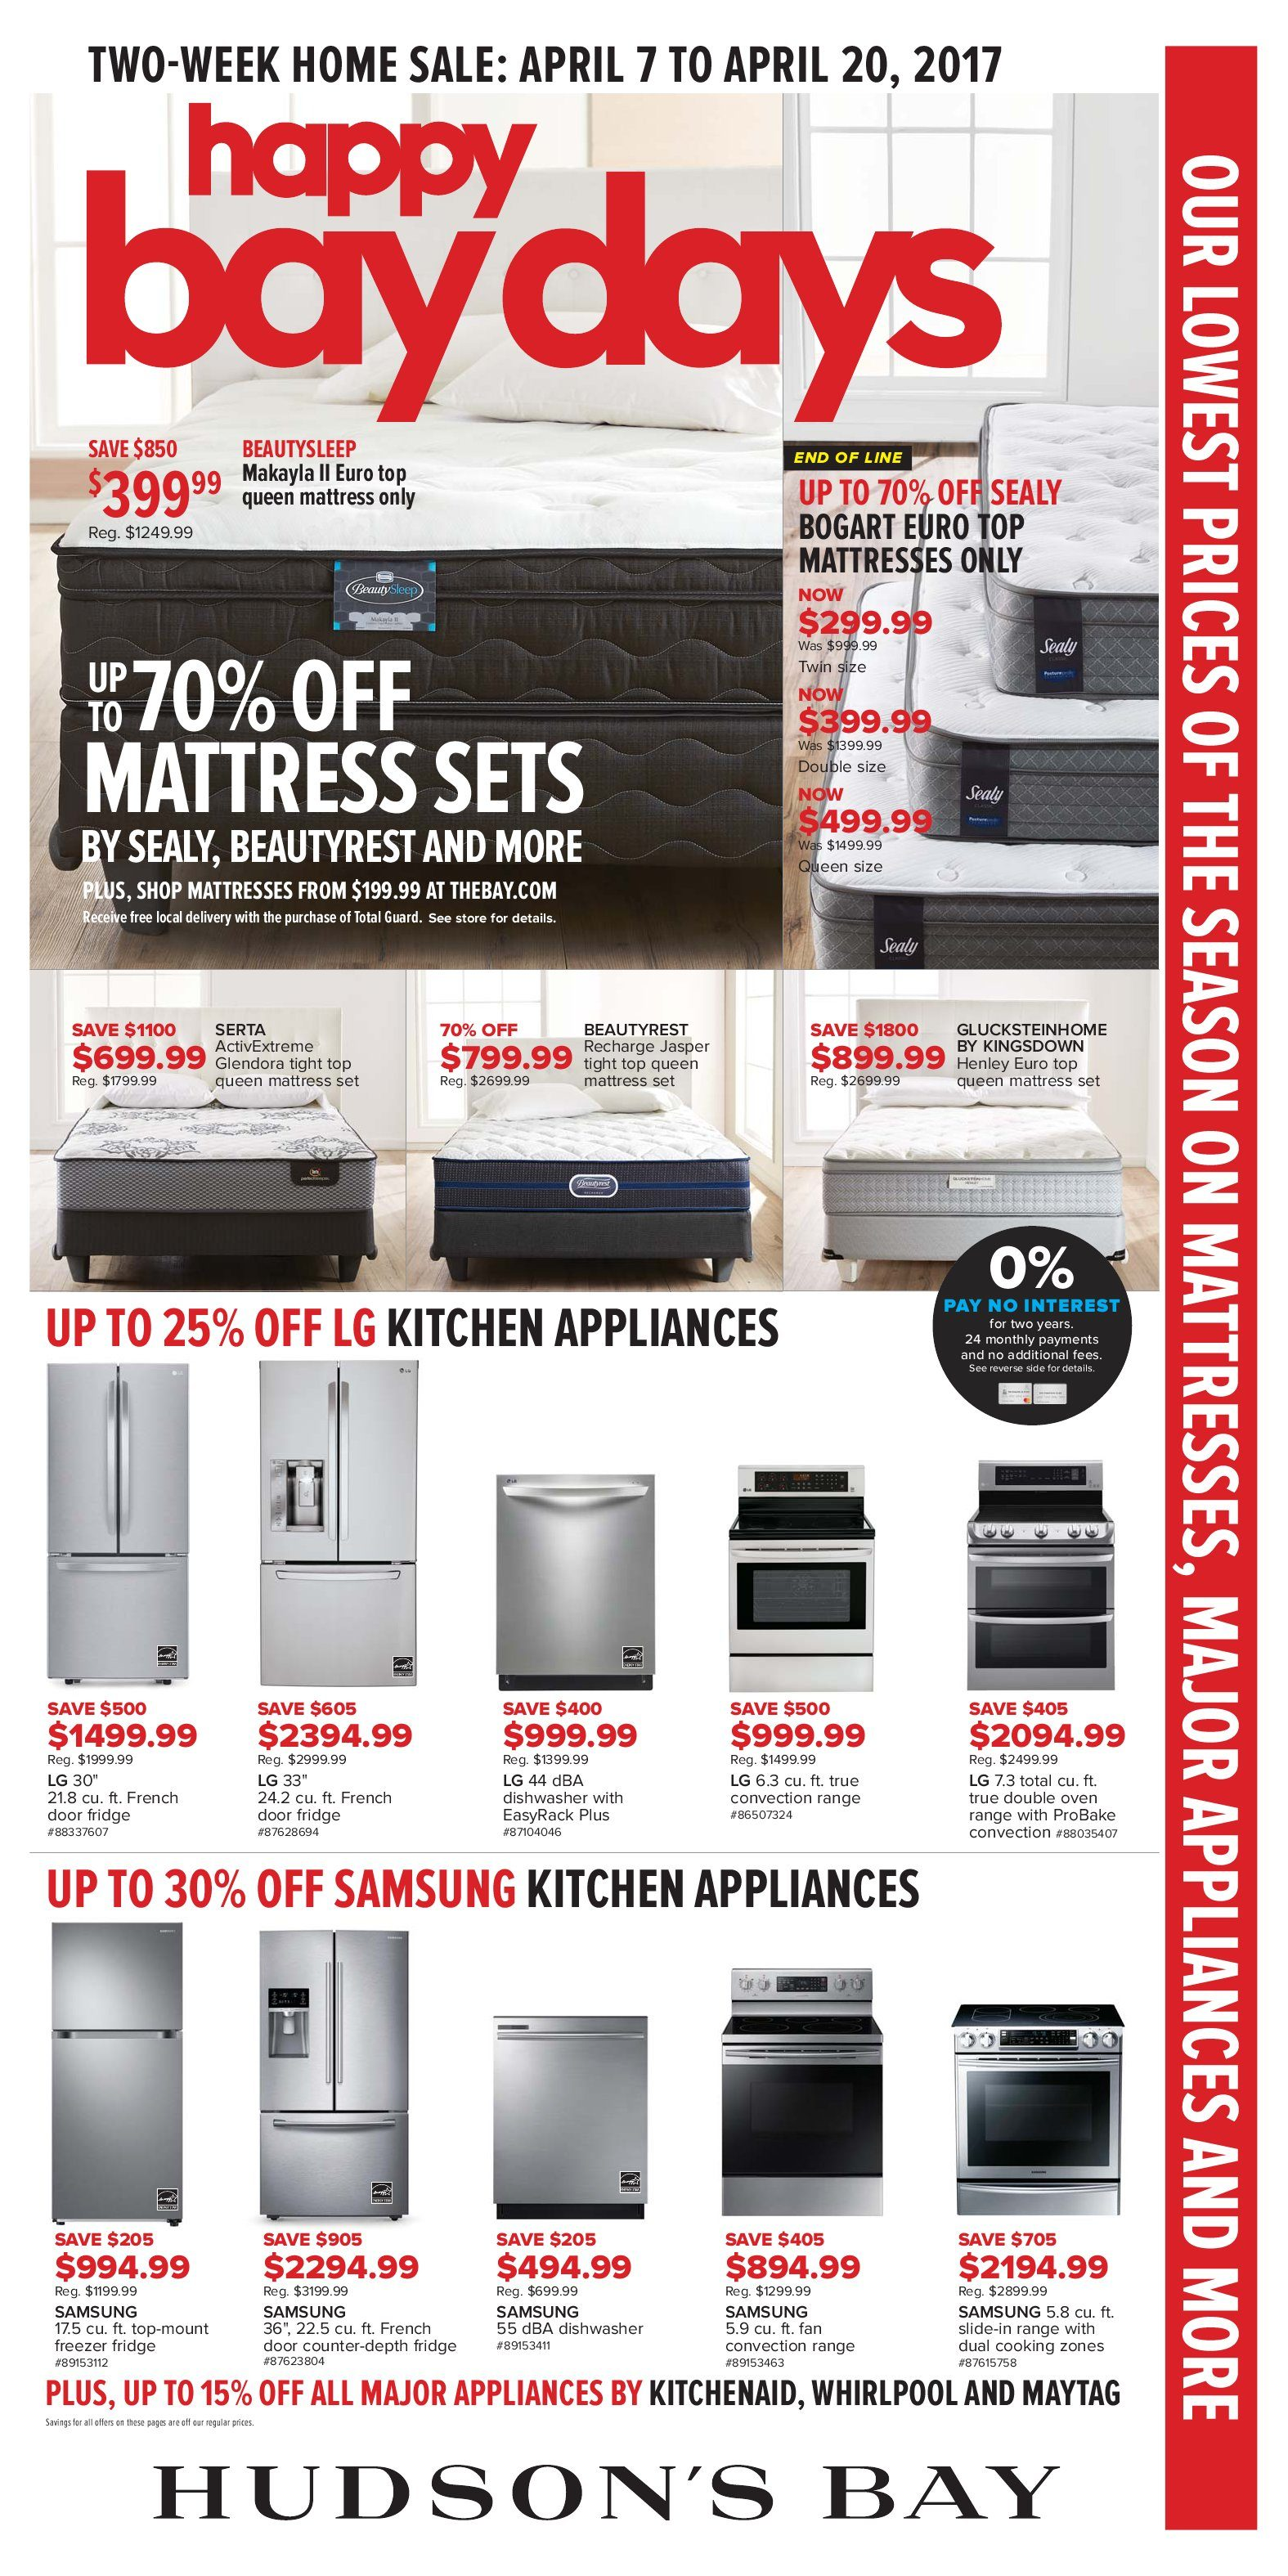 The Bay Weekly Flyer Two Week Home Sale Happy Bay Days Apr 7